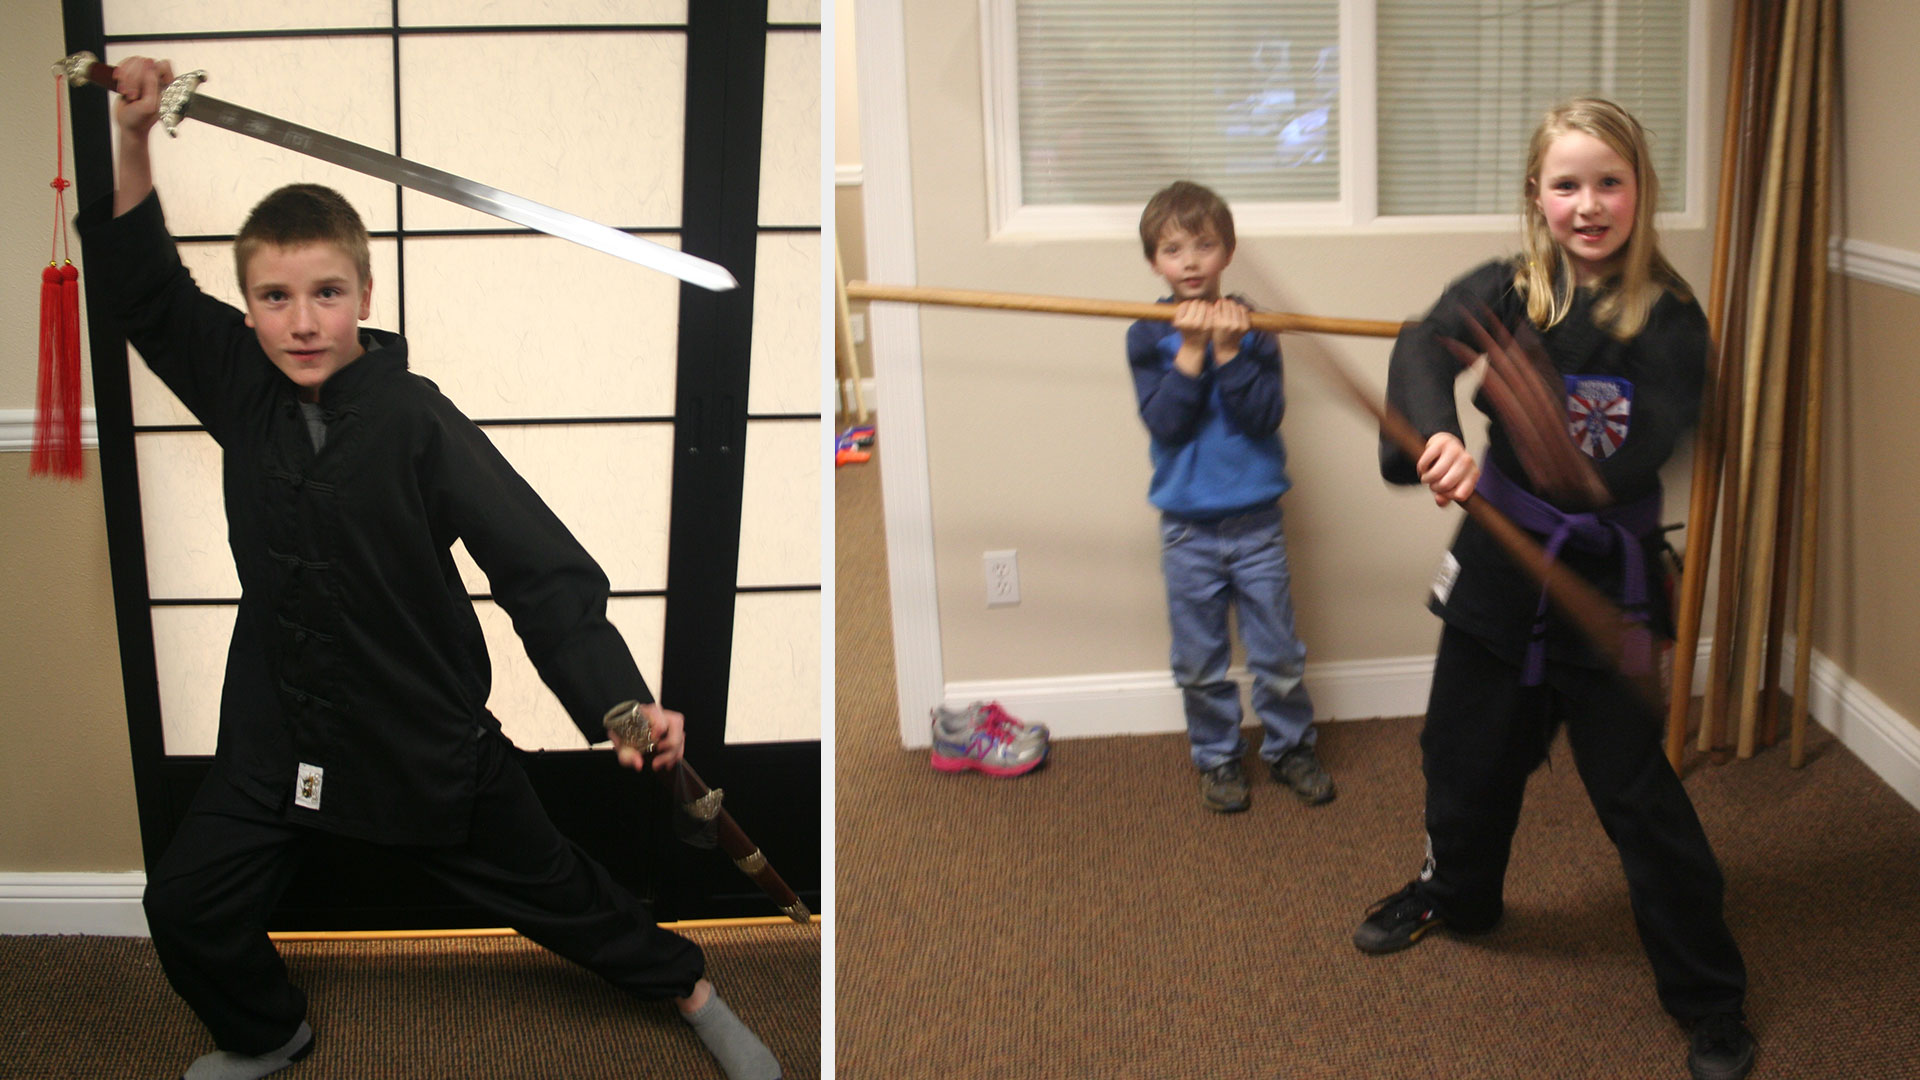 Tucker & Gabby Goode Students of Imperial Martial Arts Academy